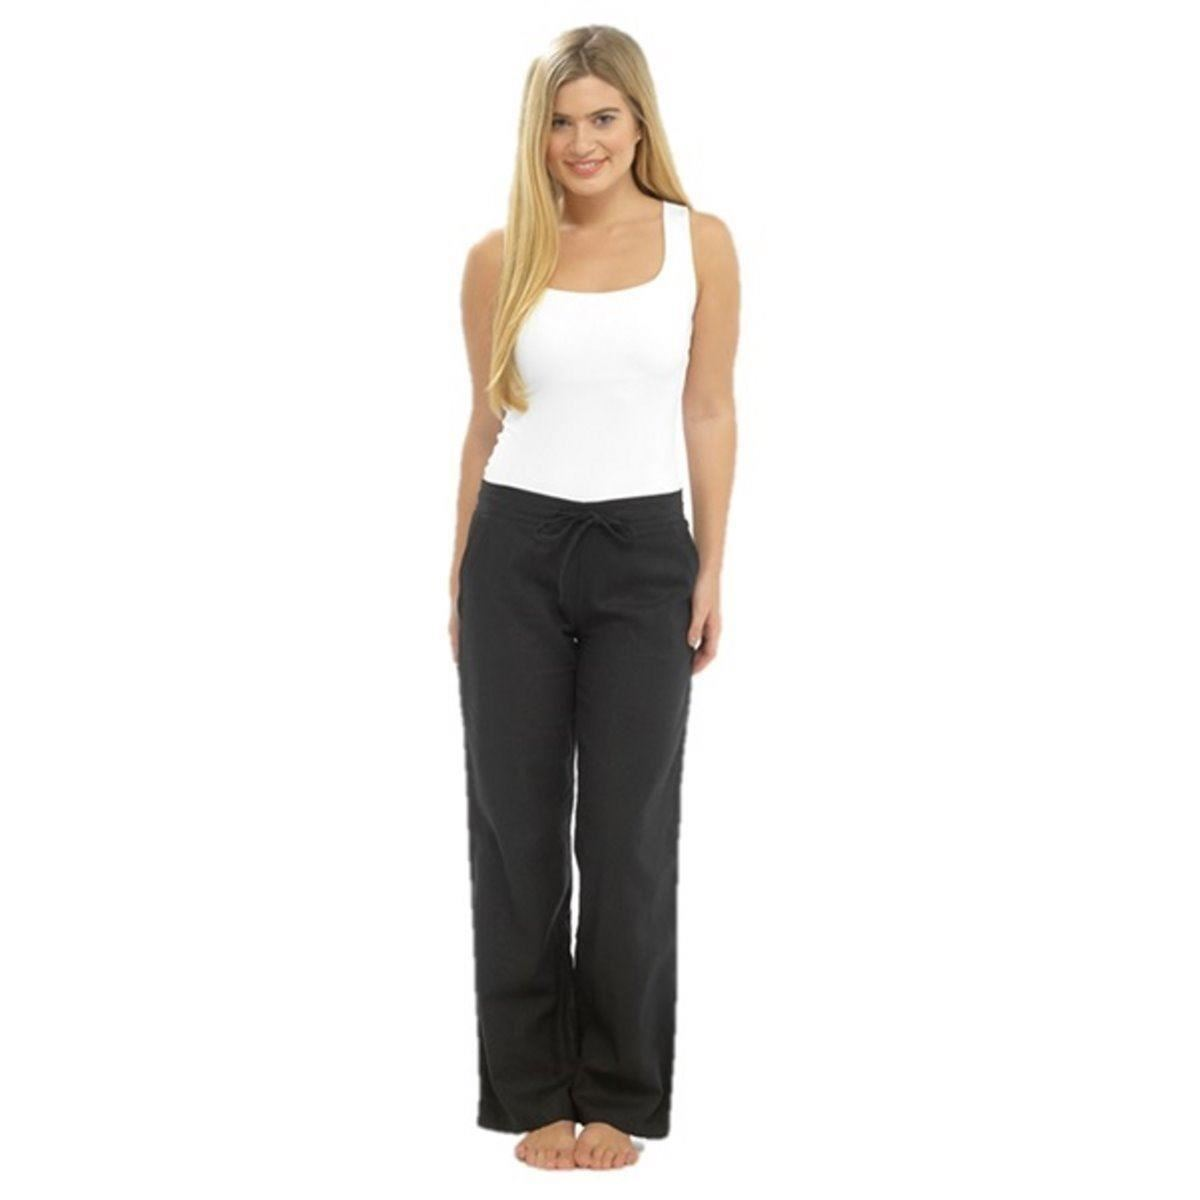 Womens Linen Trousers Pants Casual Relaxed Fit Bright Size